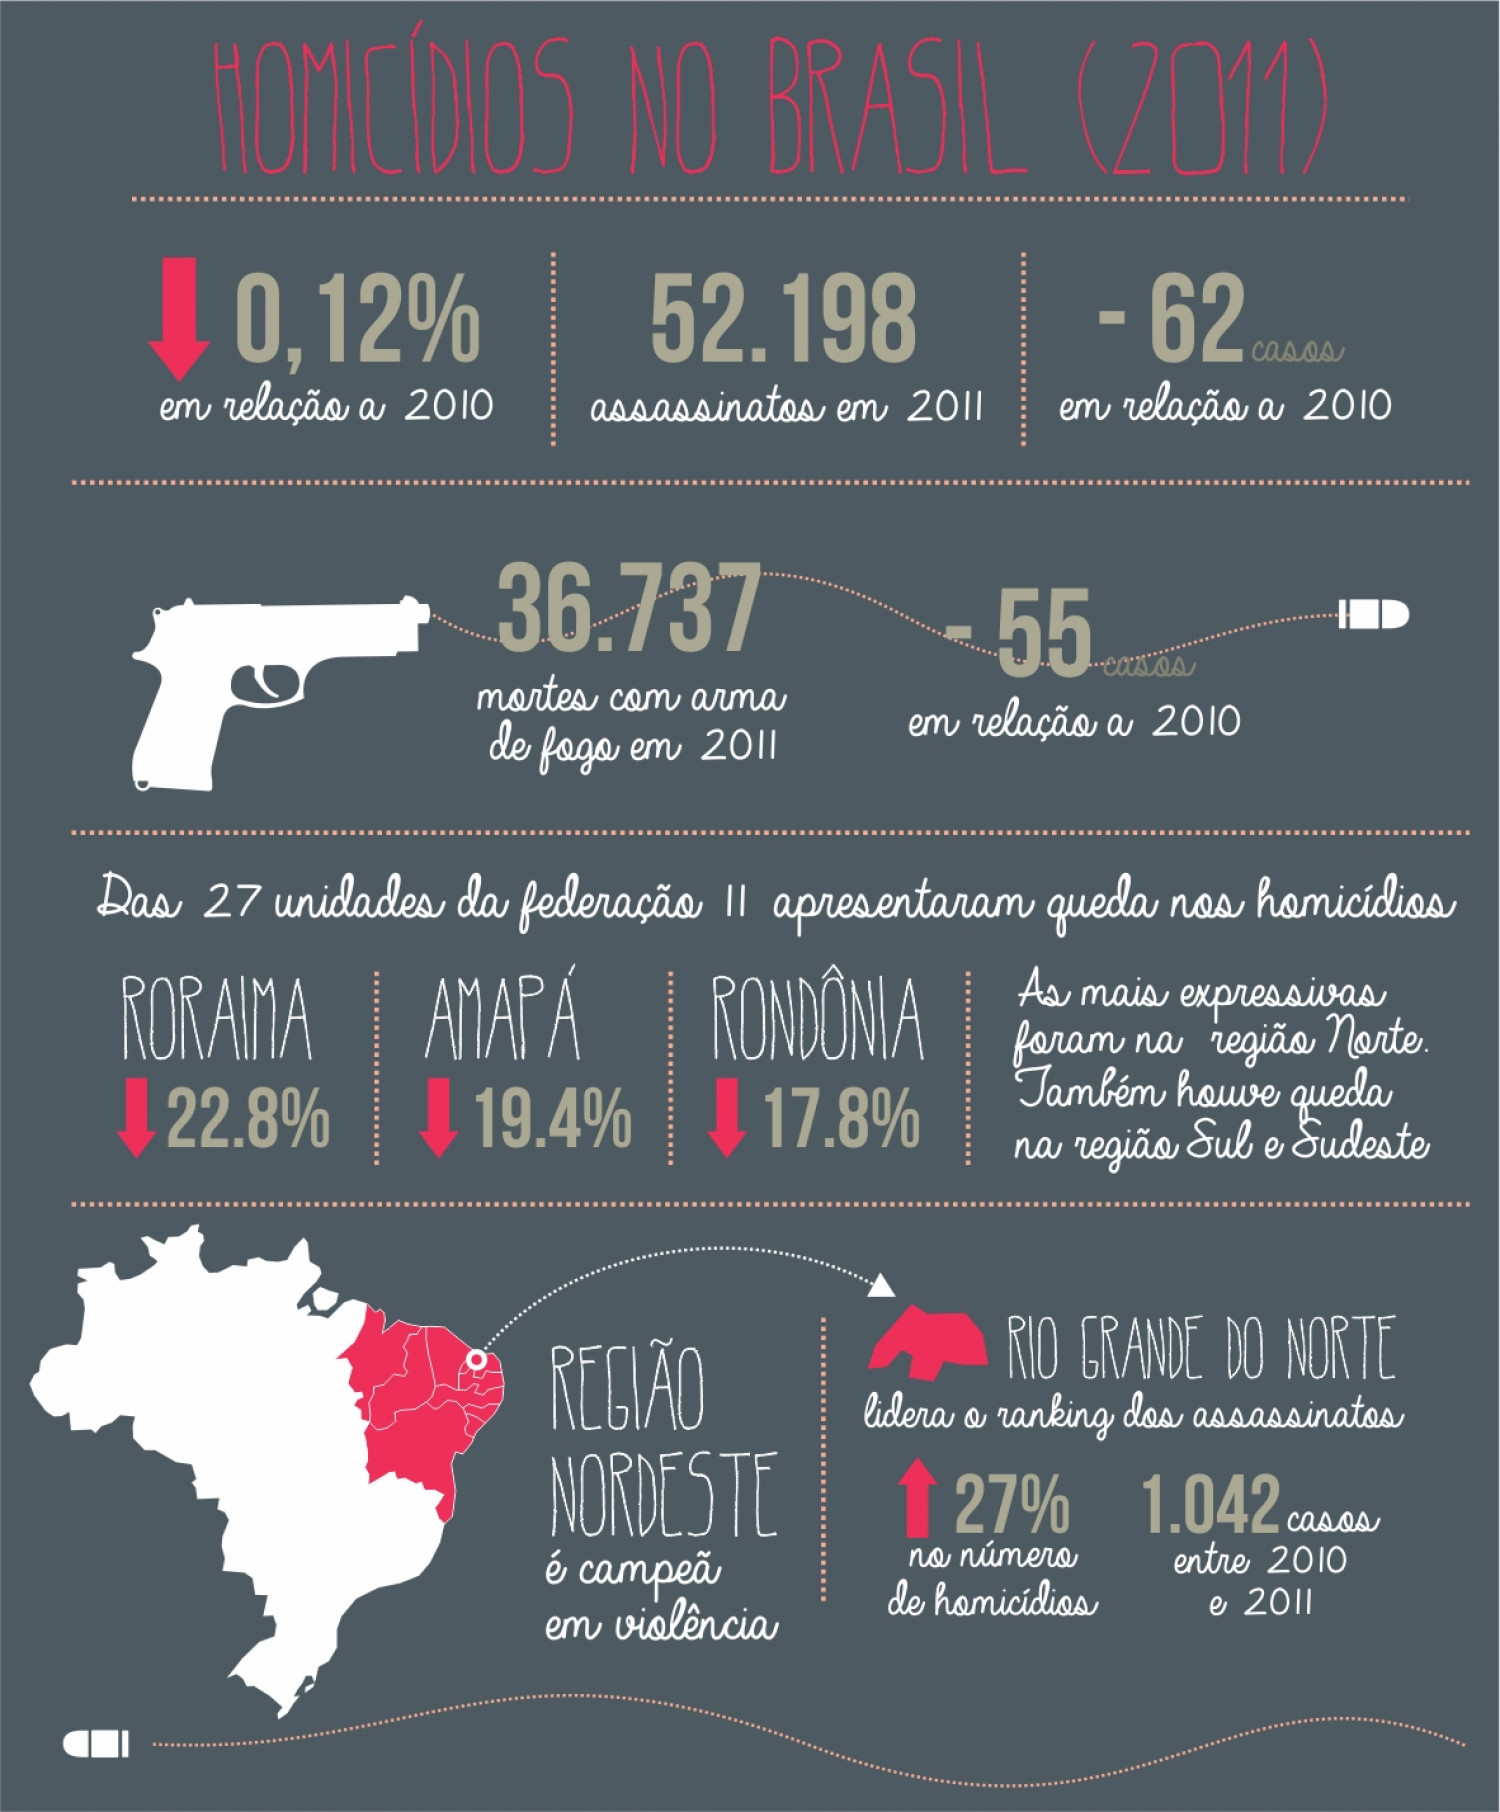 Homicídios Infographic